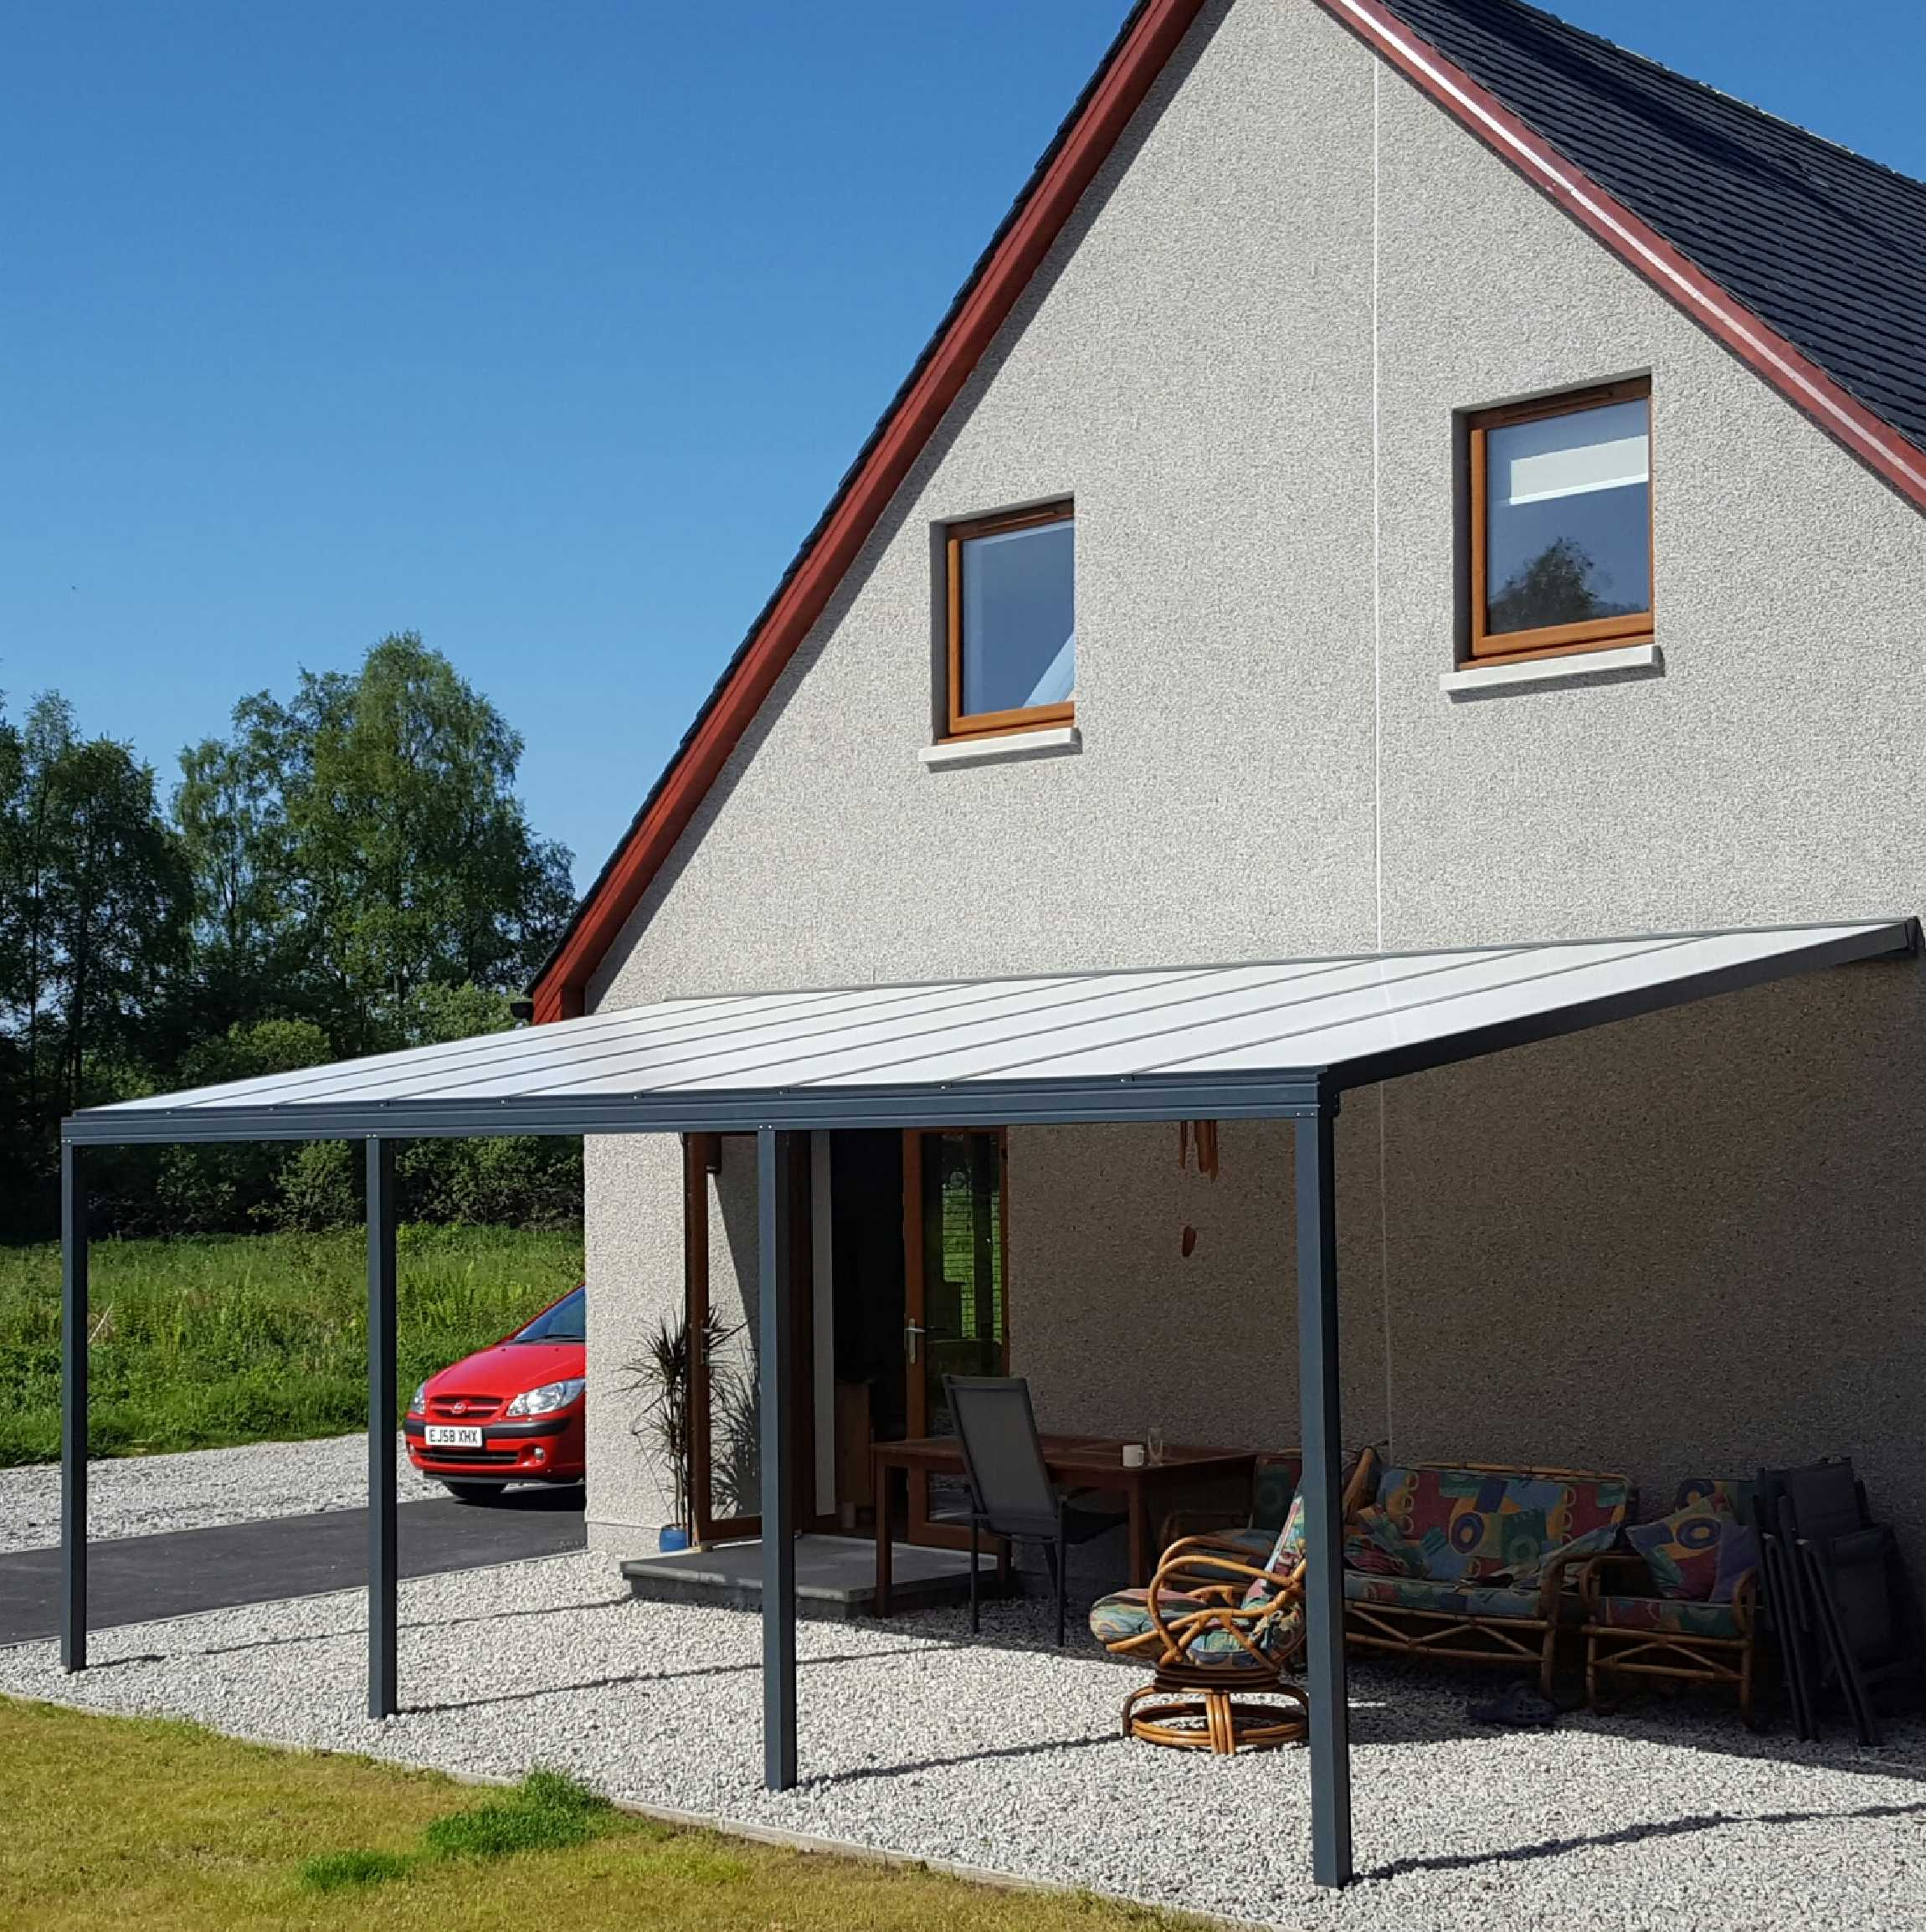 Great selection of Omega Smart Lean-To Canopy, Anthracite Grey, 16mm Polycarbonate Glazing - 4.2m (W) x 3.5m (P), (3) Supporting Posts